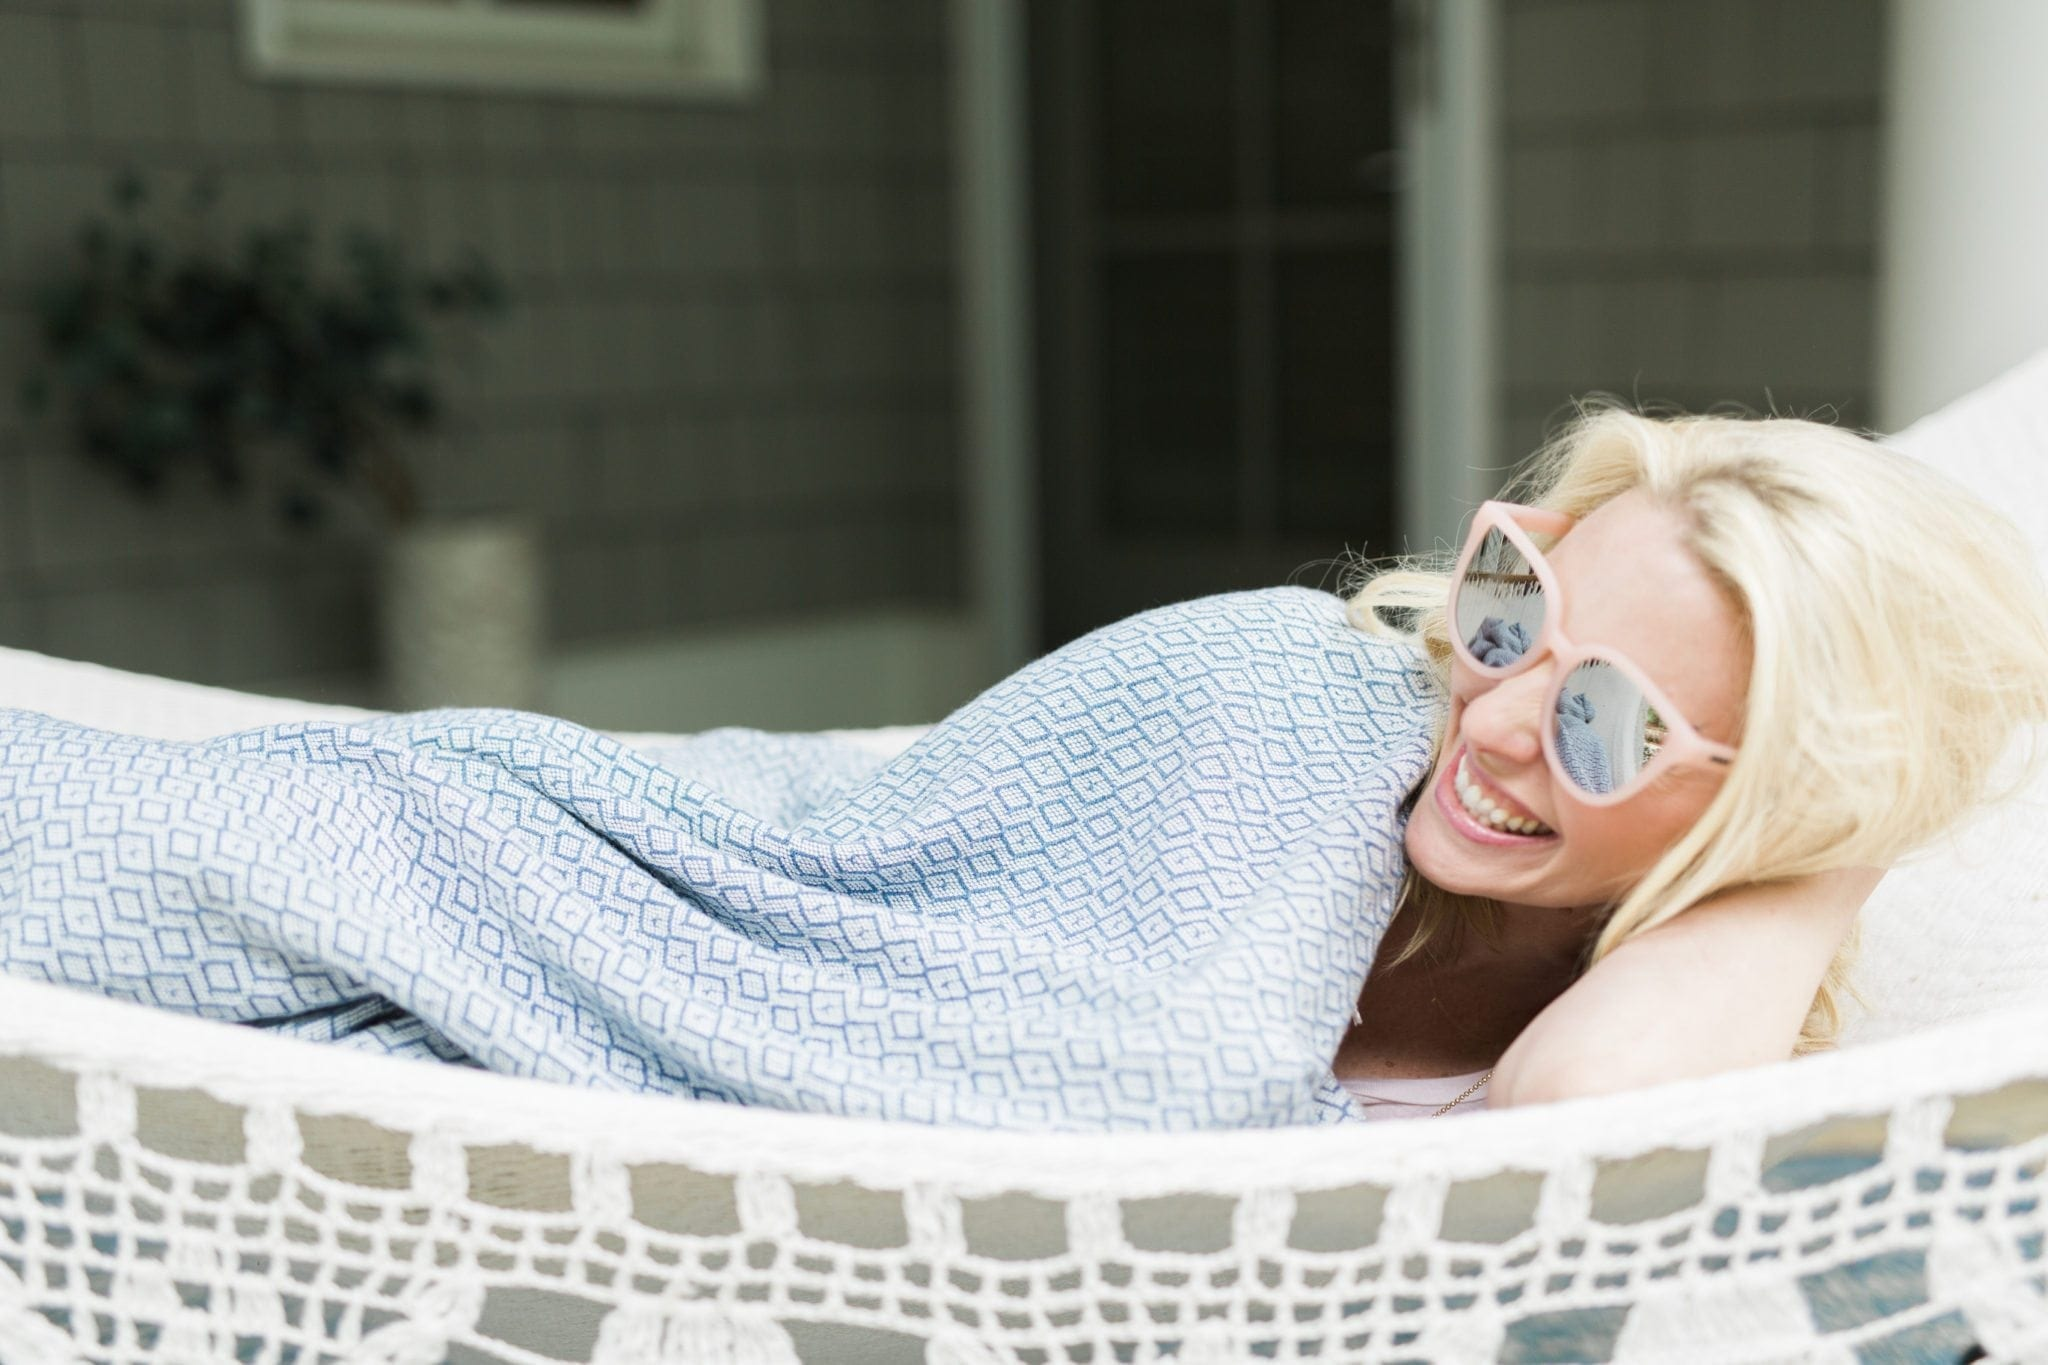 Oversized Mirrored Sunglasses are an outfit alone! Wear them with loungewear and look cute in minutes! Oversized pink sunglasses for women and a blue outdoor throw blanket on a fringe hammock say summer living everywhere!